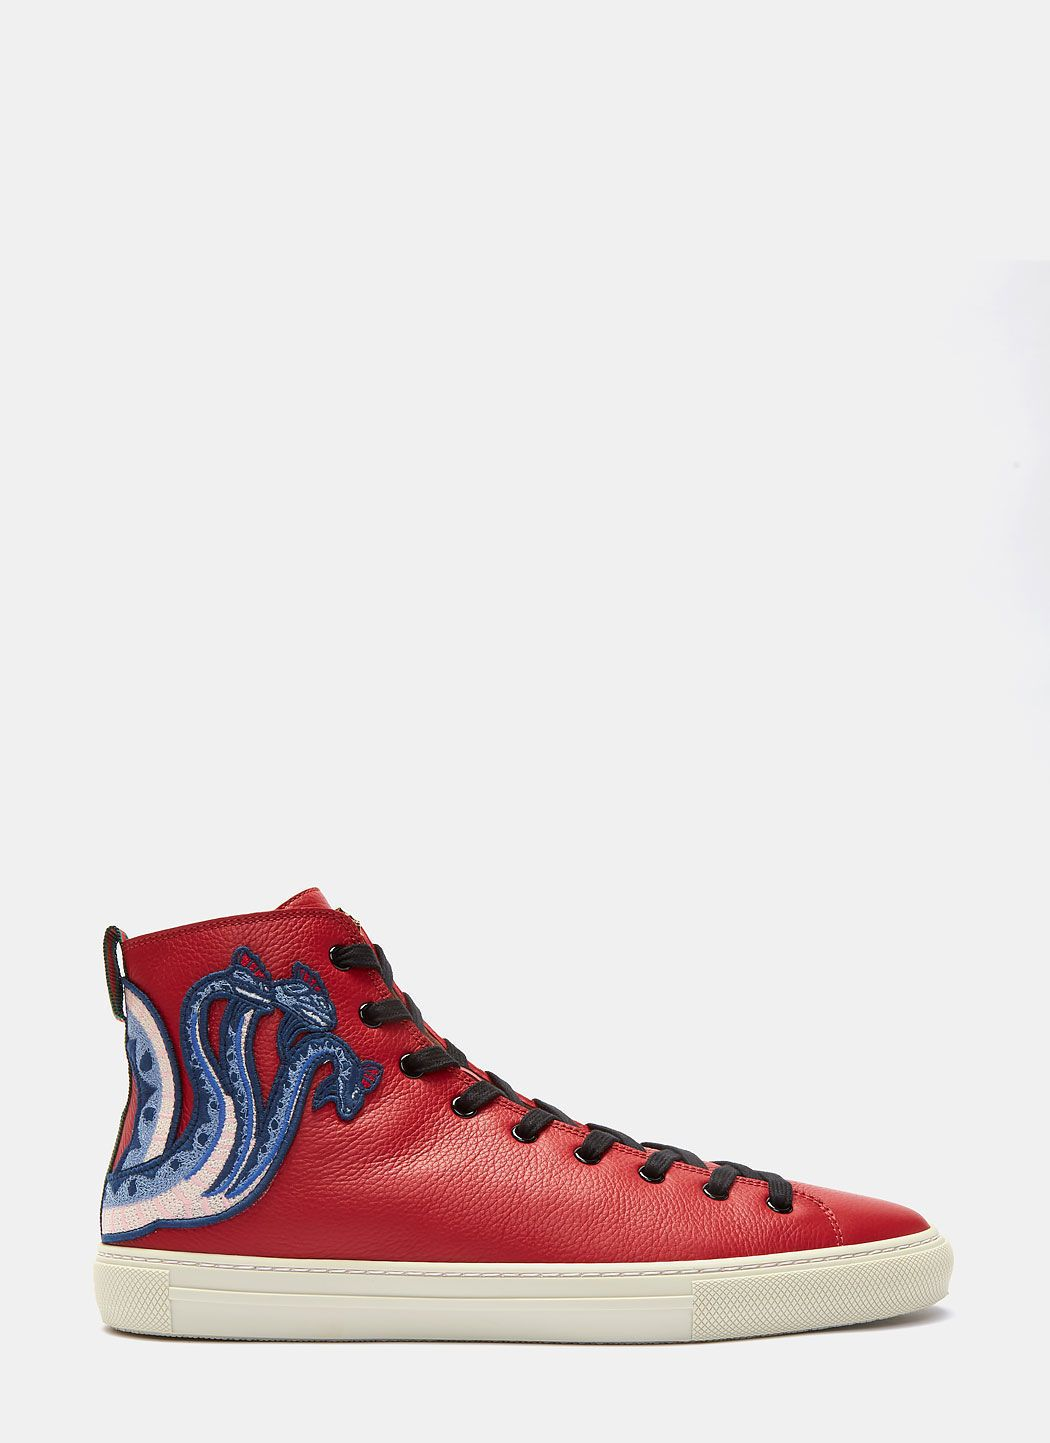 half off 2d64e 0f287 GUCCI Men S Dragon Embroidered High-Top Sneakers In Red.  gucci  shoes